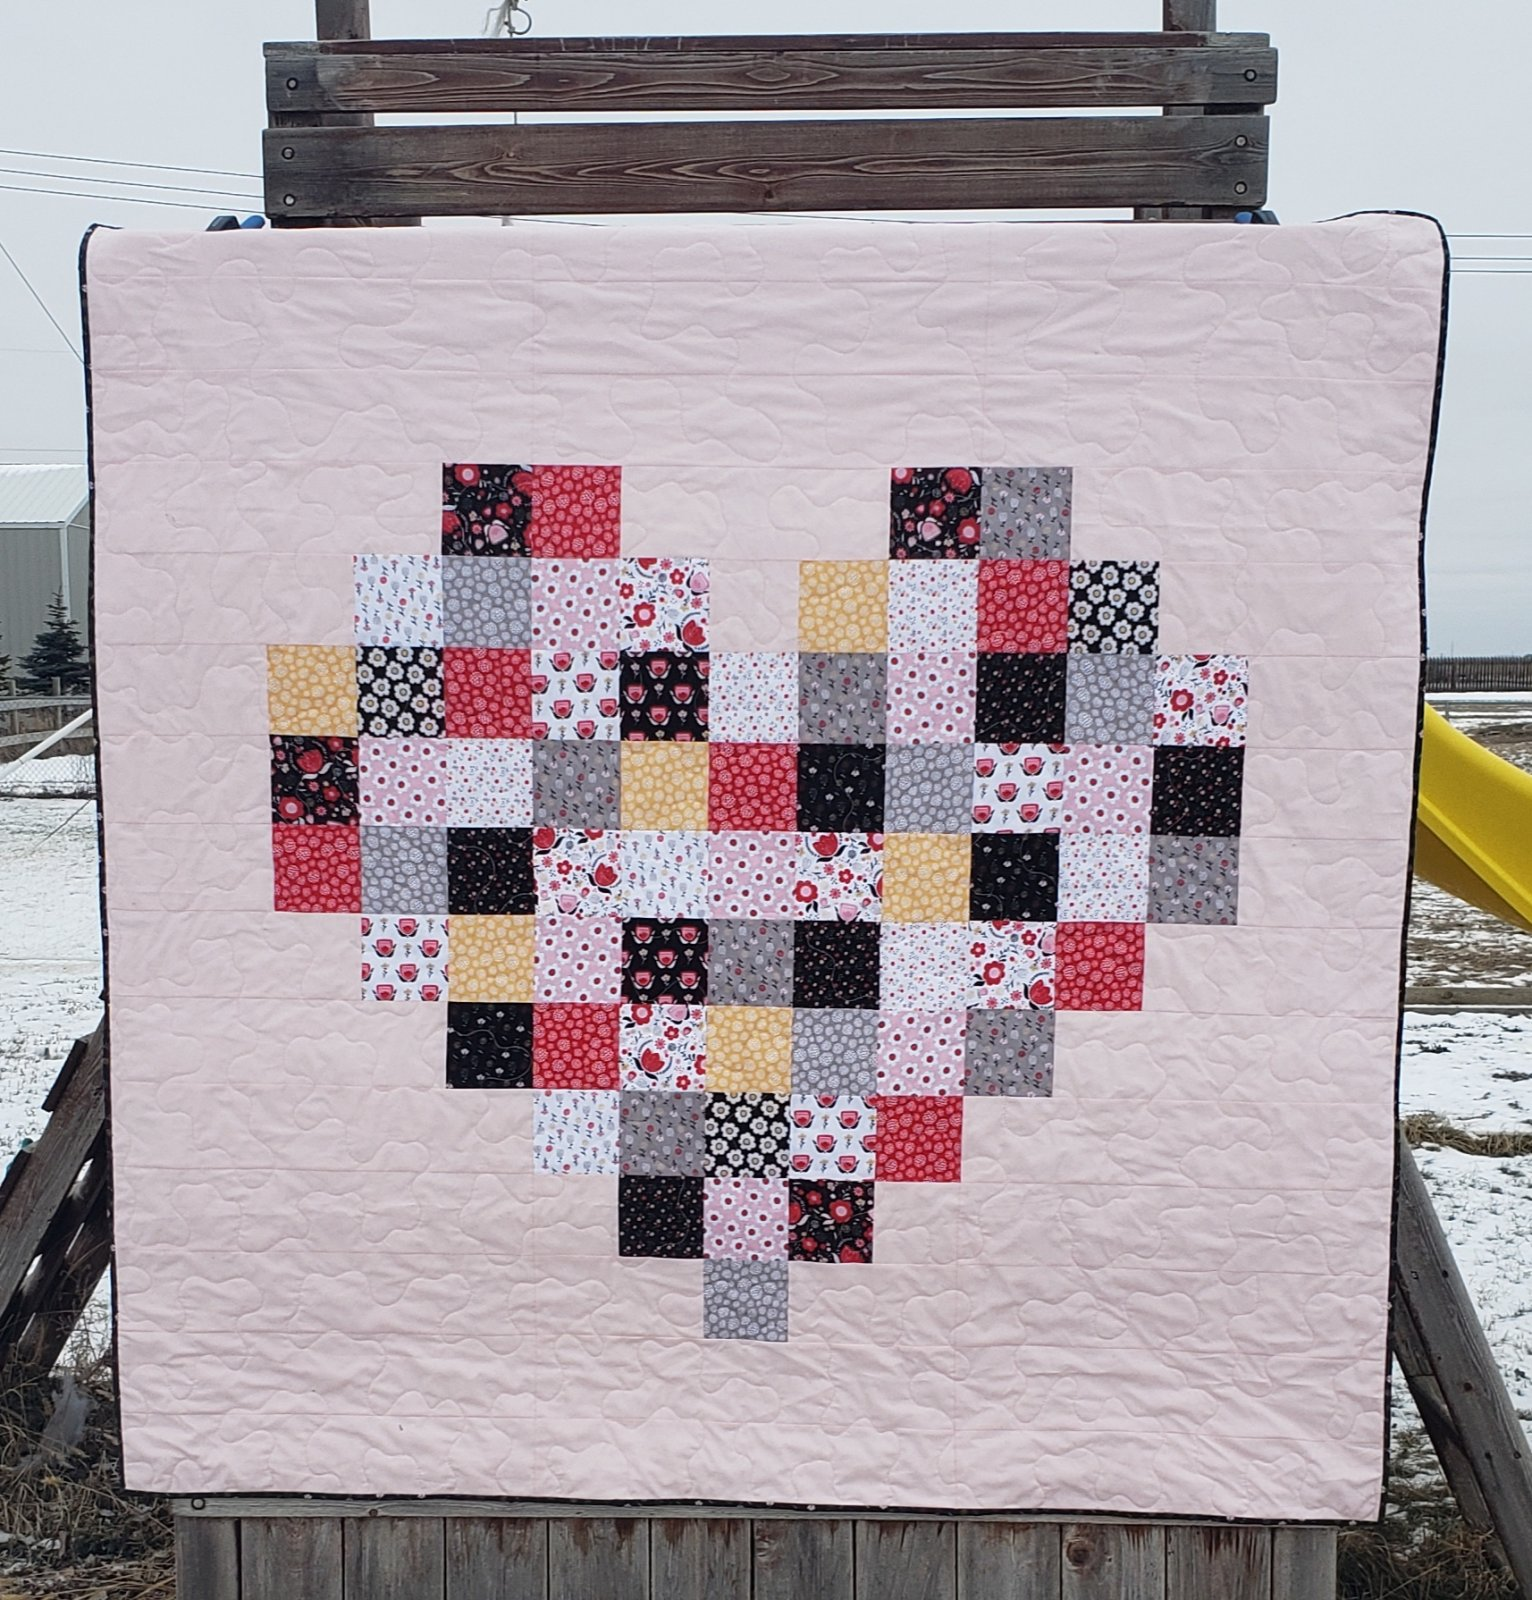 Pixelated Heart Quilt (Field of Poppies)